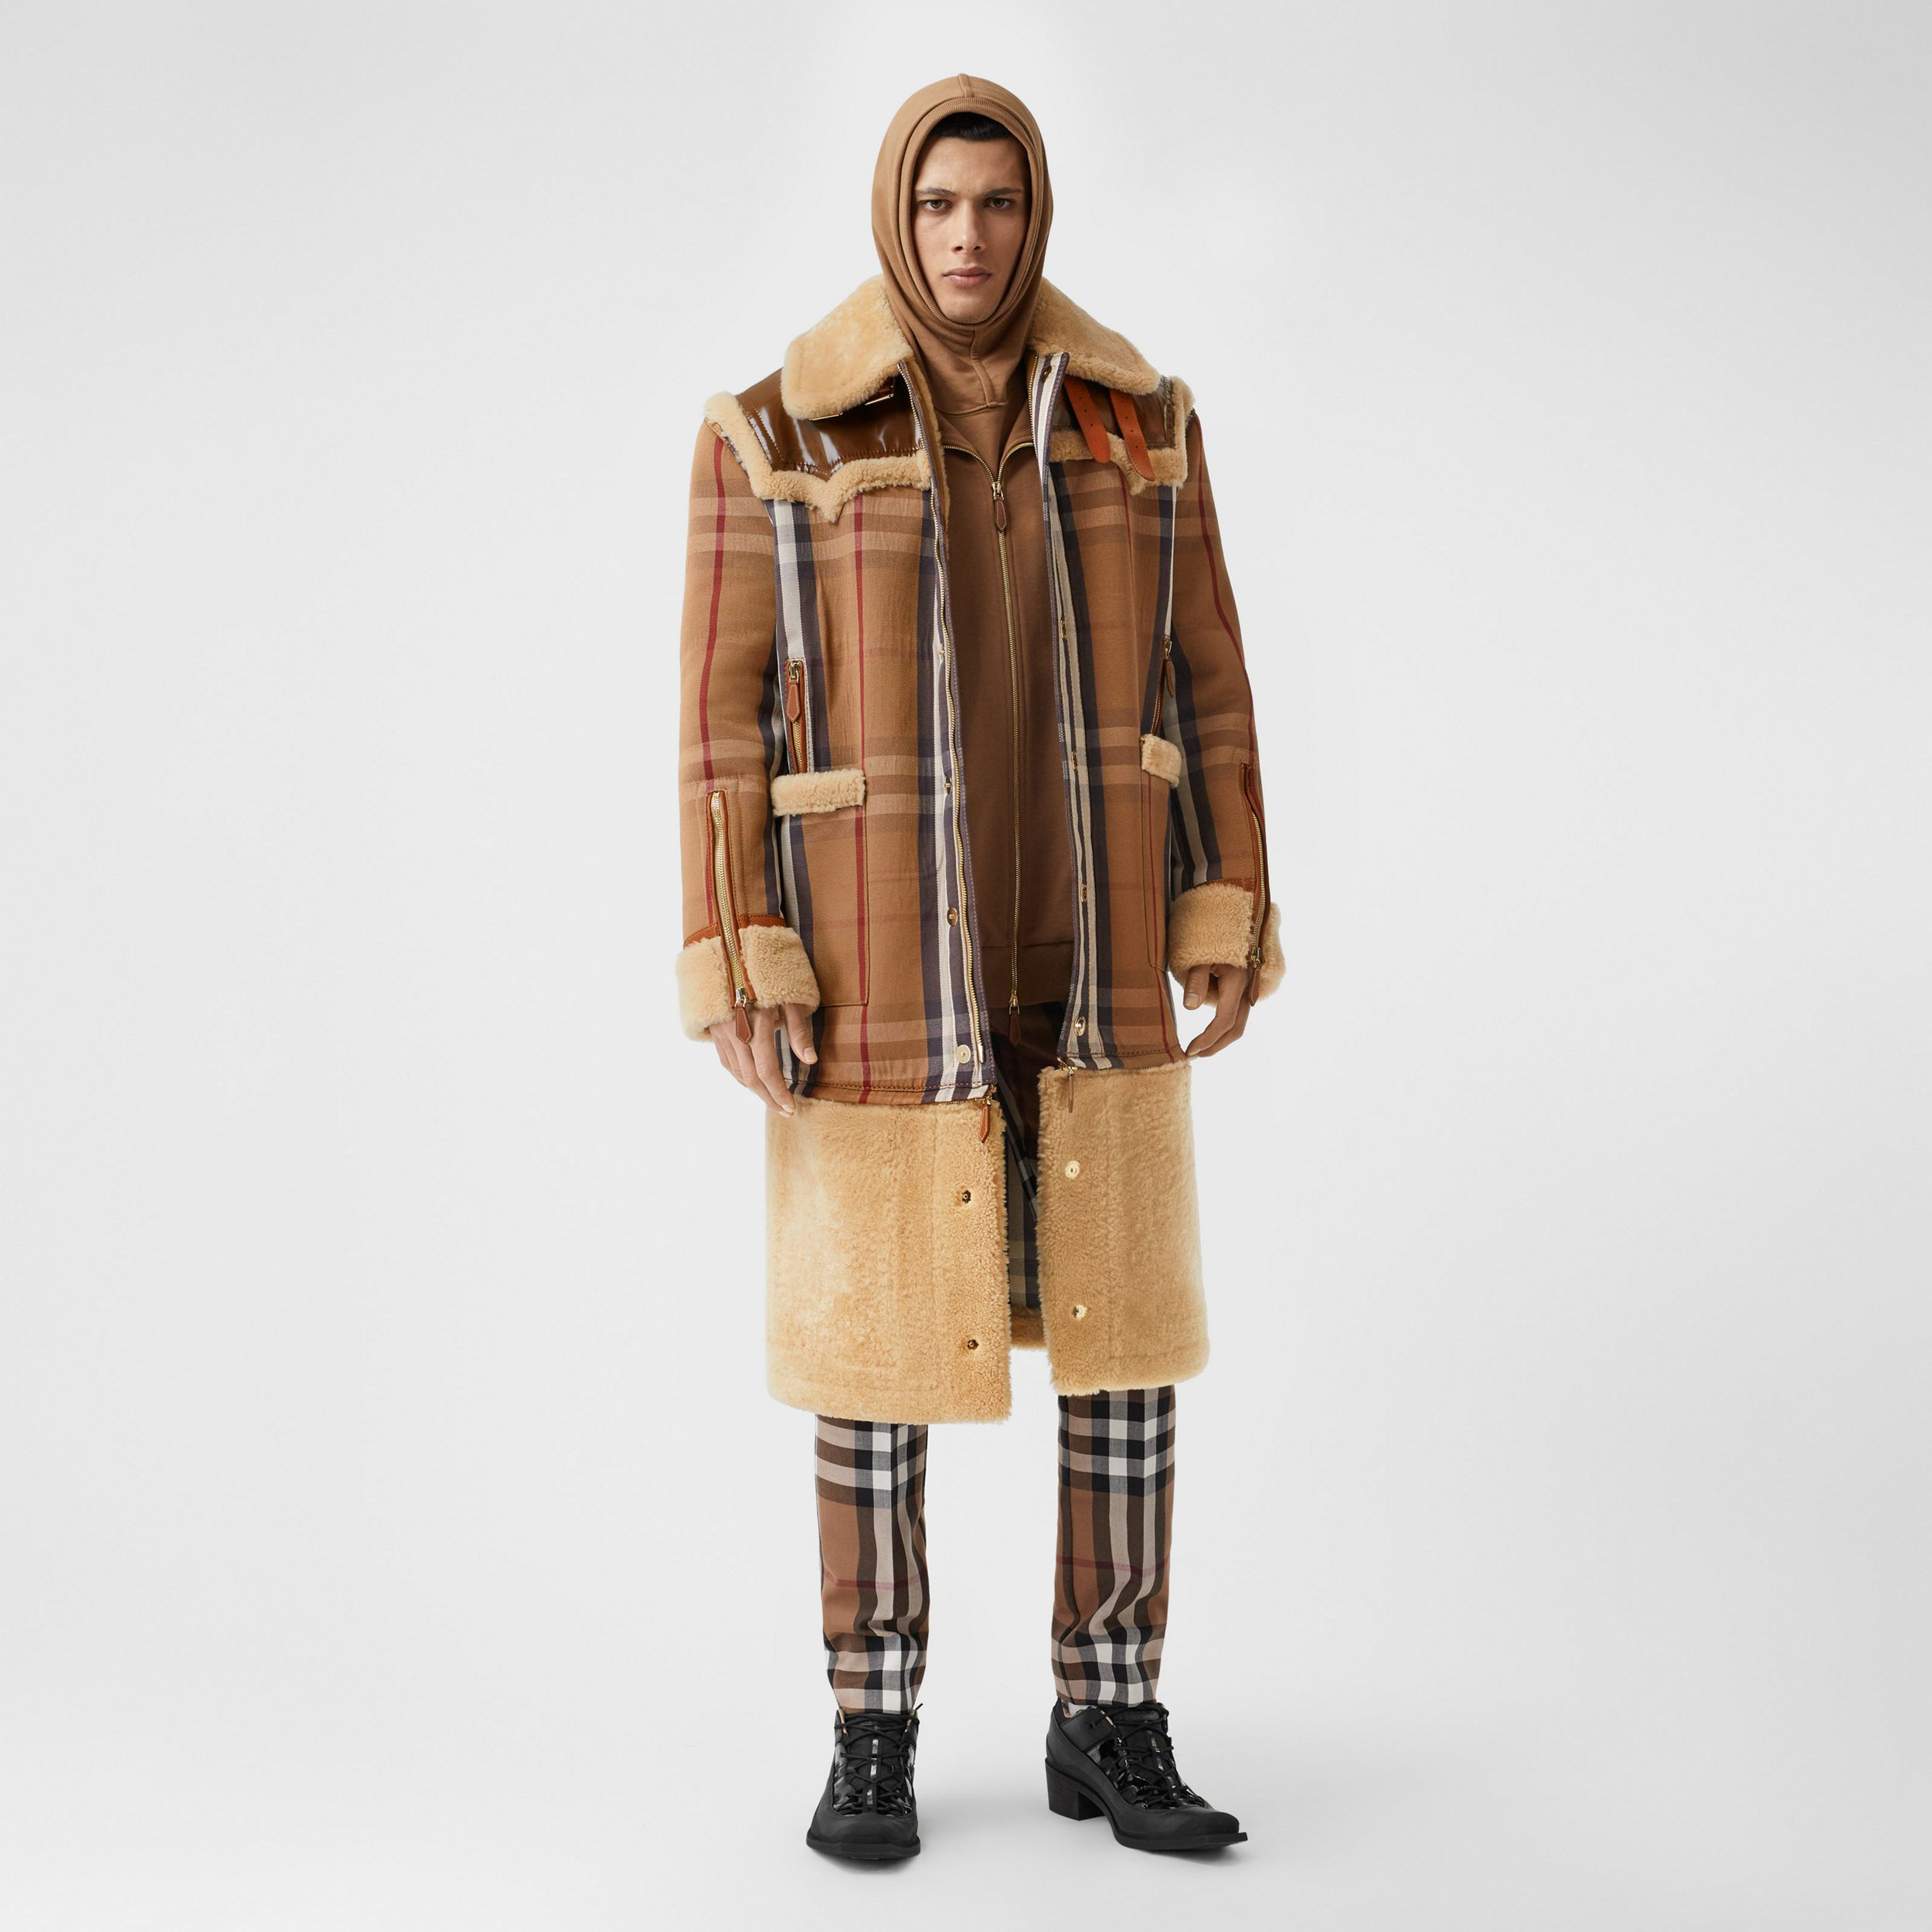 Manteau en shearling et coton technique House check (Bouleau Brun) | Burberry - 1